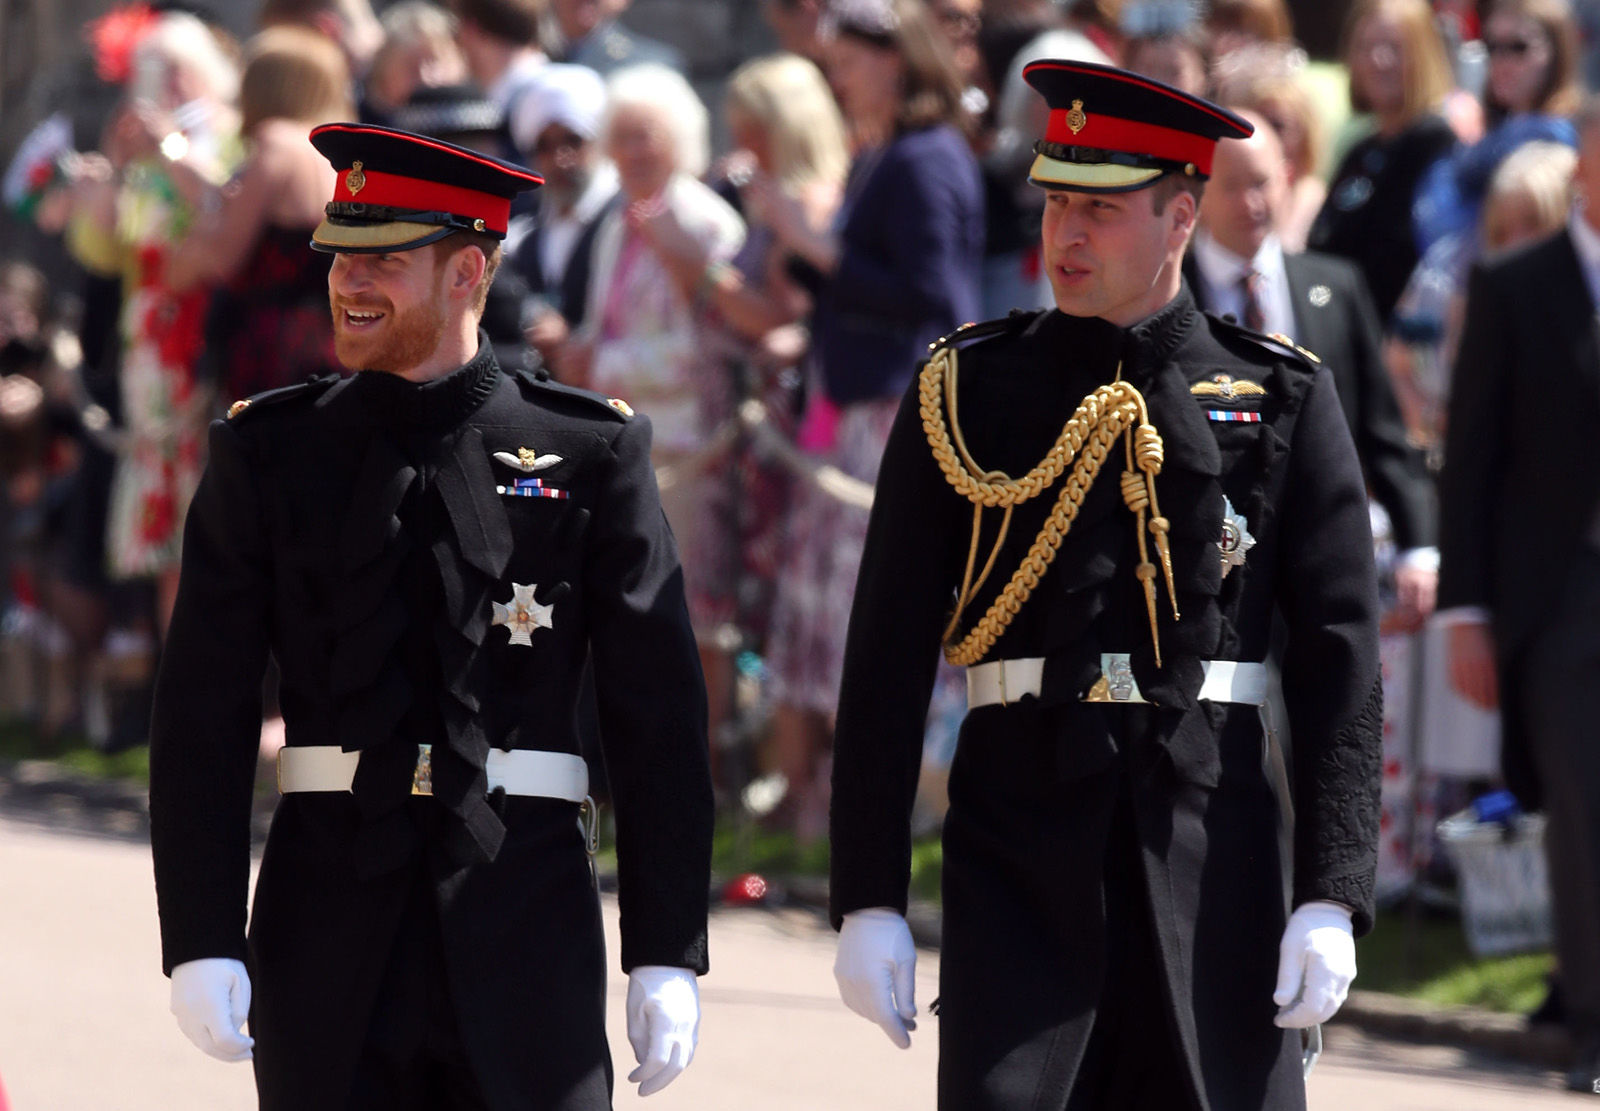 Prince Harry walks with his best man, Prince William, Duke of Cambridge as they arrive at St George's Chapel at Windsor Castle before the wedding of Prince Harry to Meghan Markle on May 19, 2018 in Windsor, England. (Photo by Chris Radburn - WPA Pool/Getty Images)